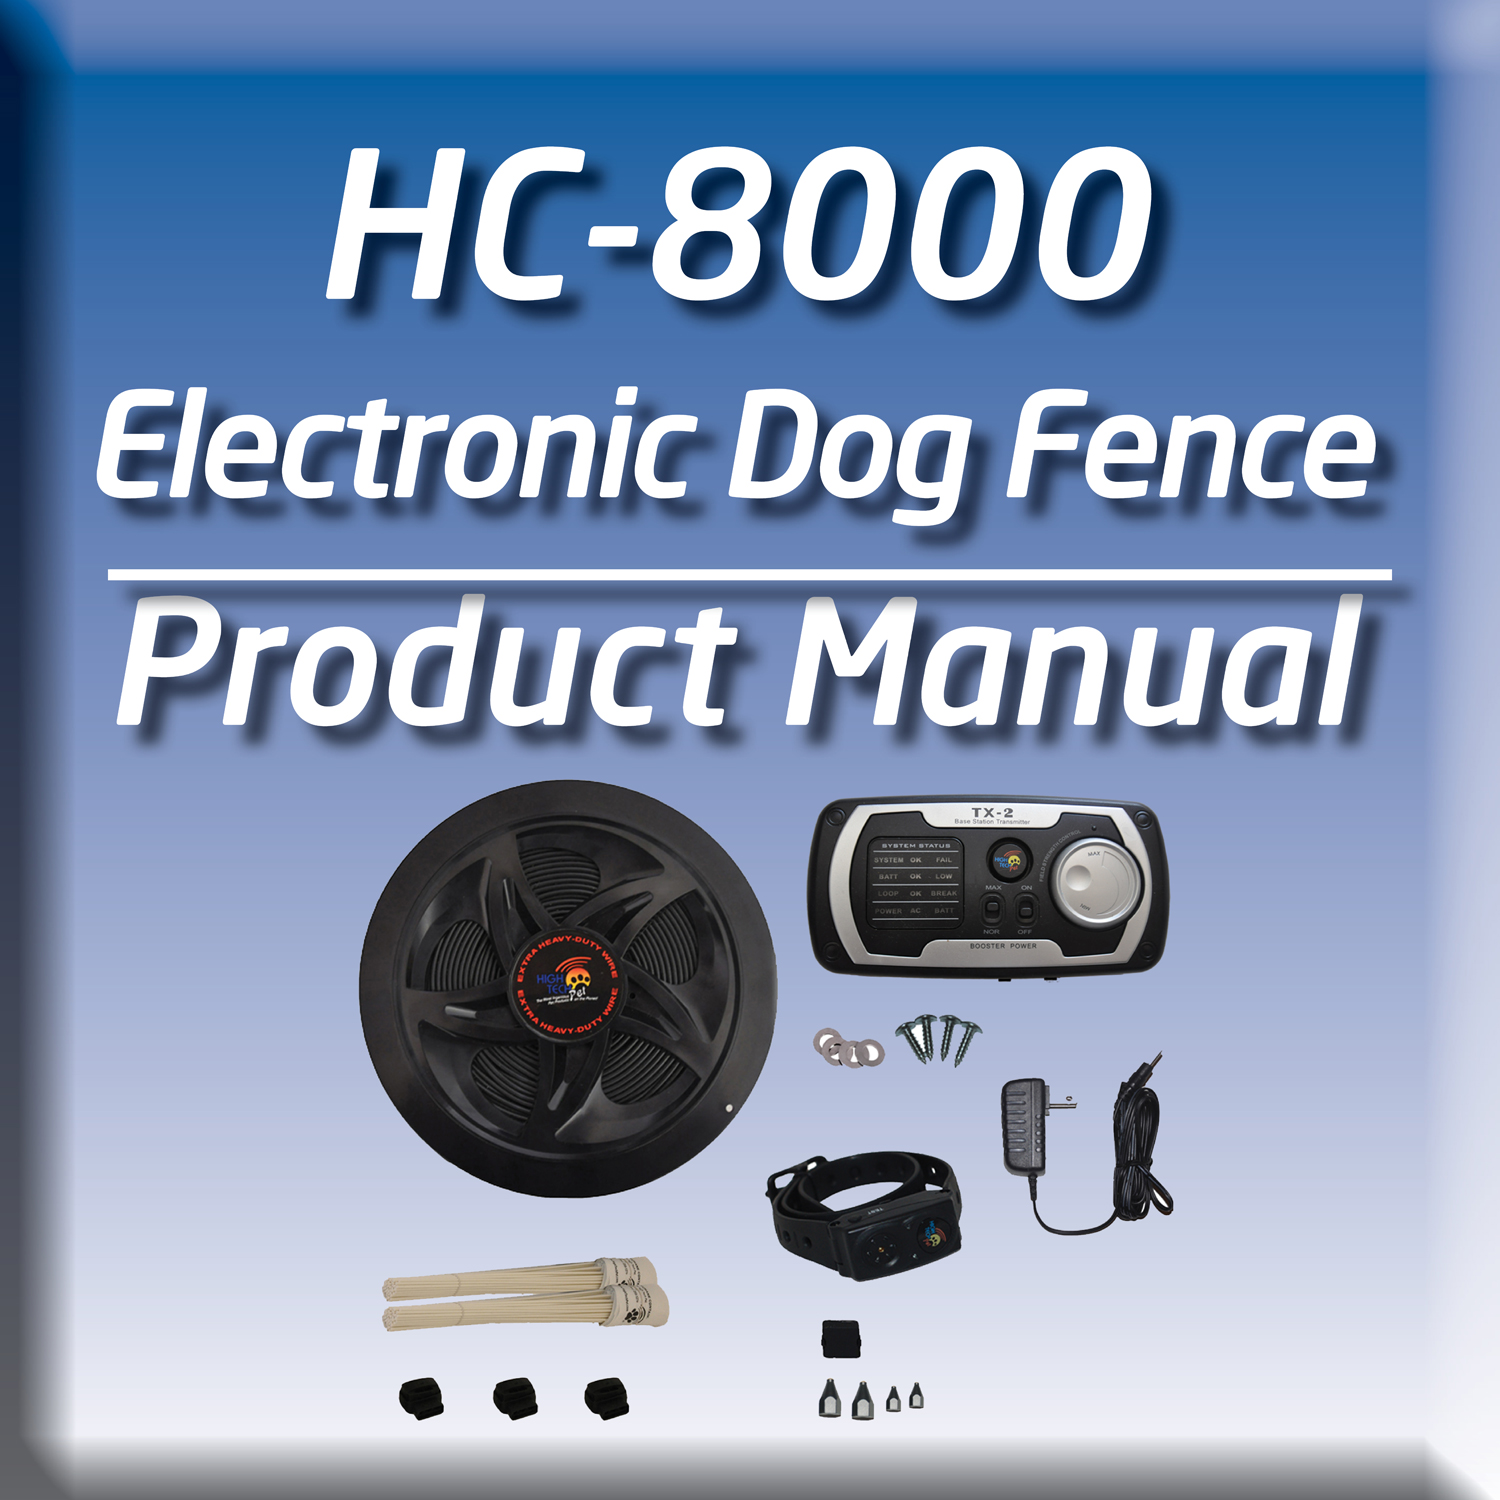 Our humane contain system manual offers help with your invisible fence